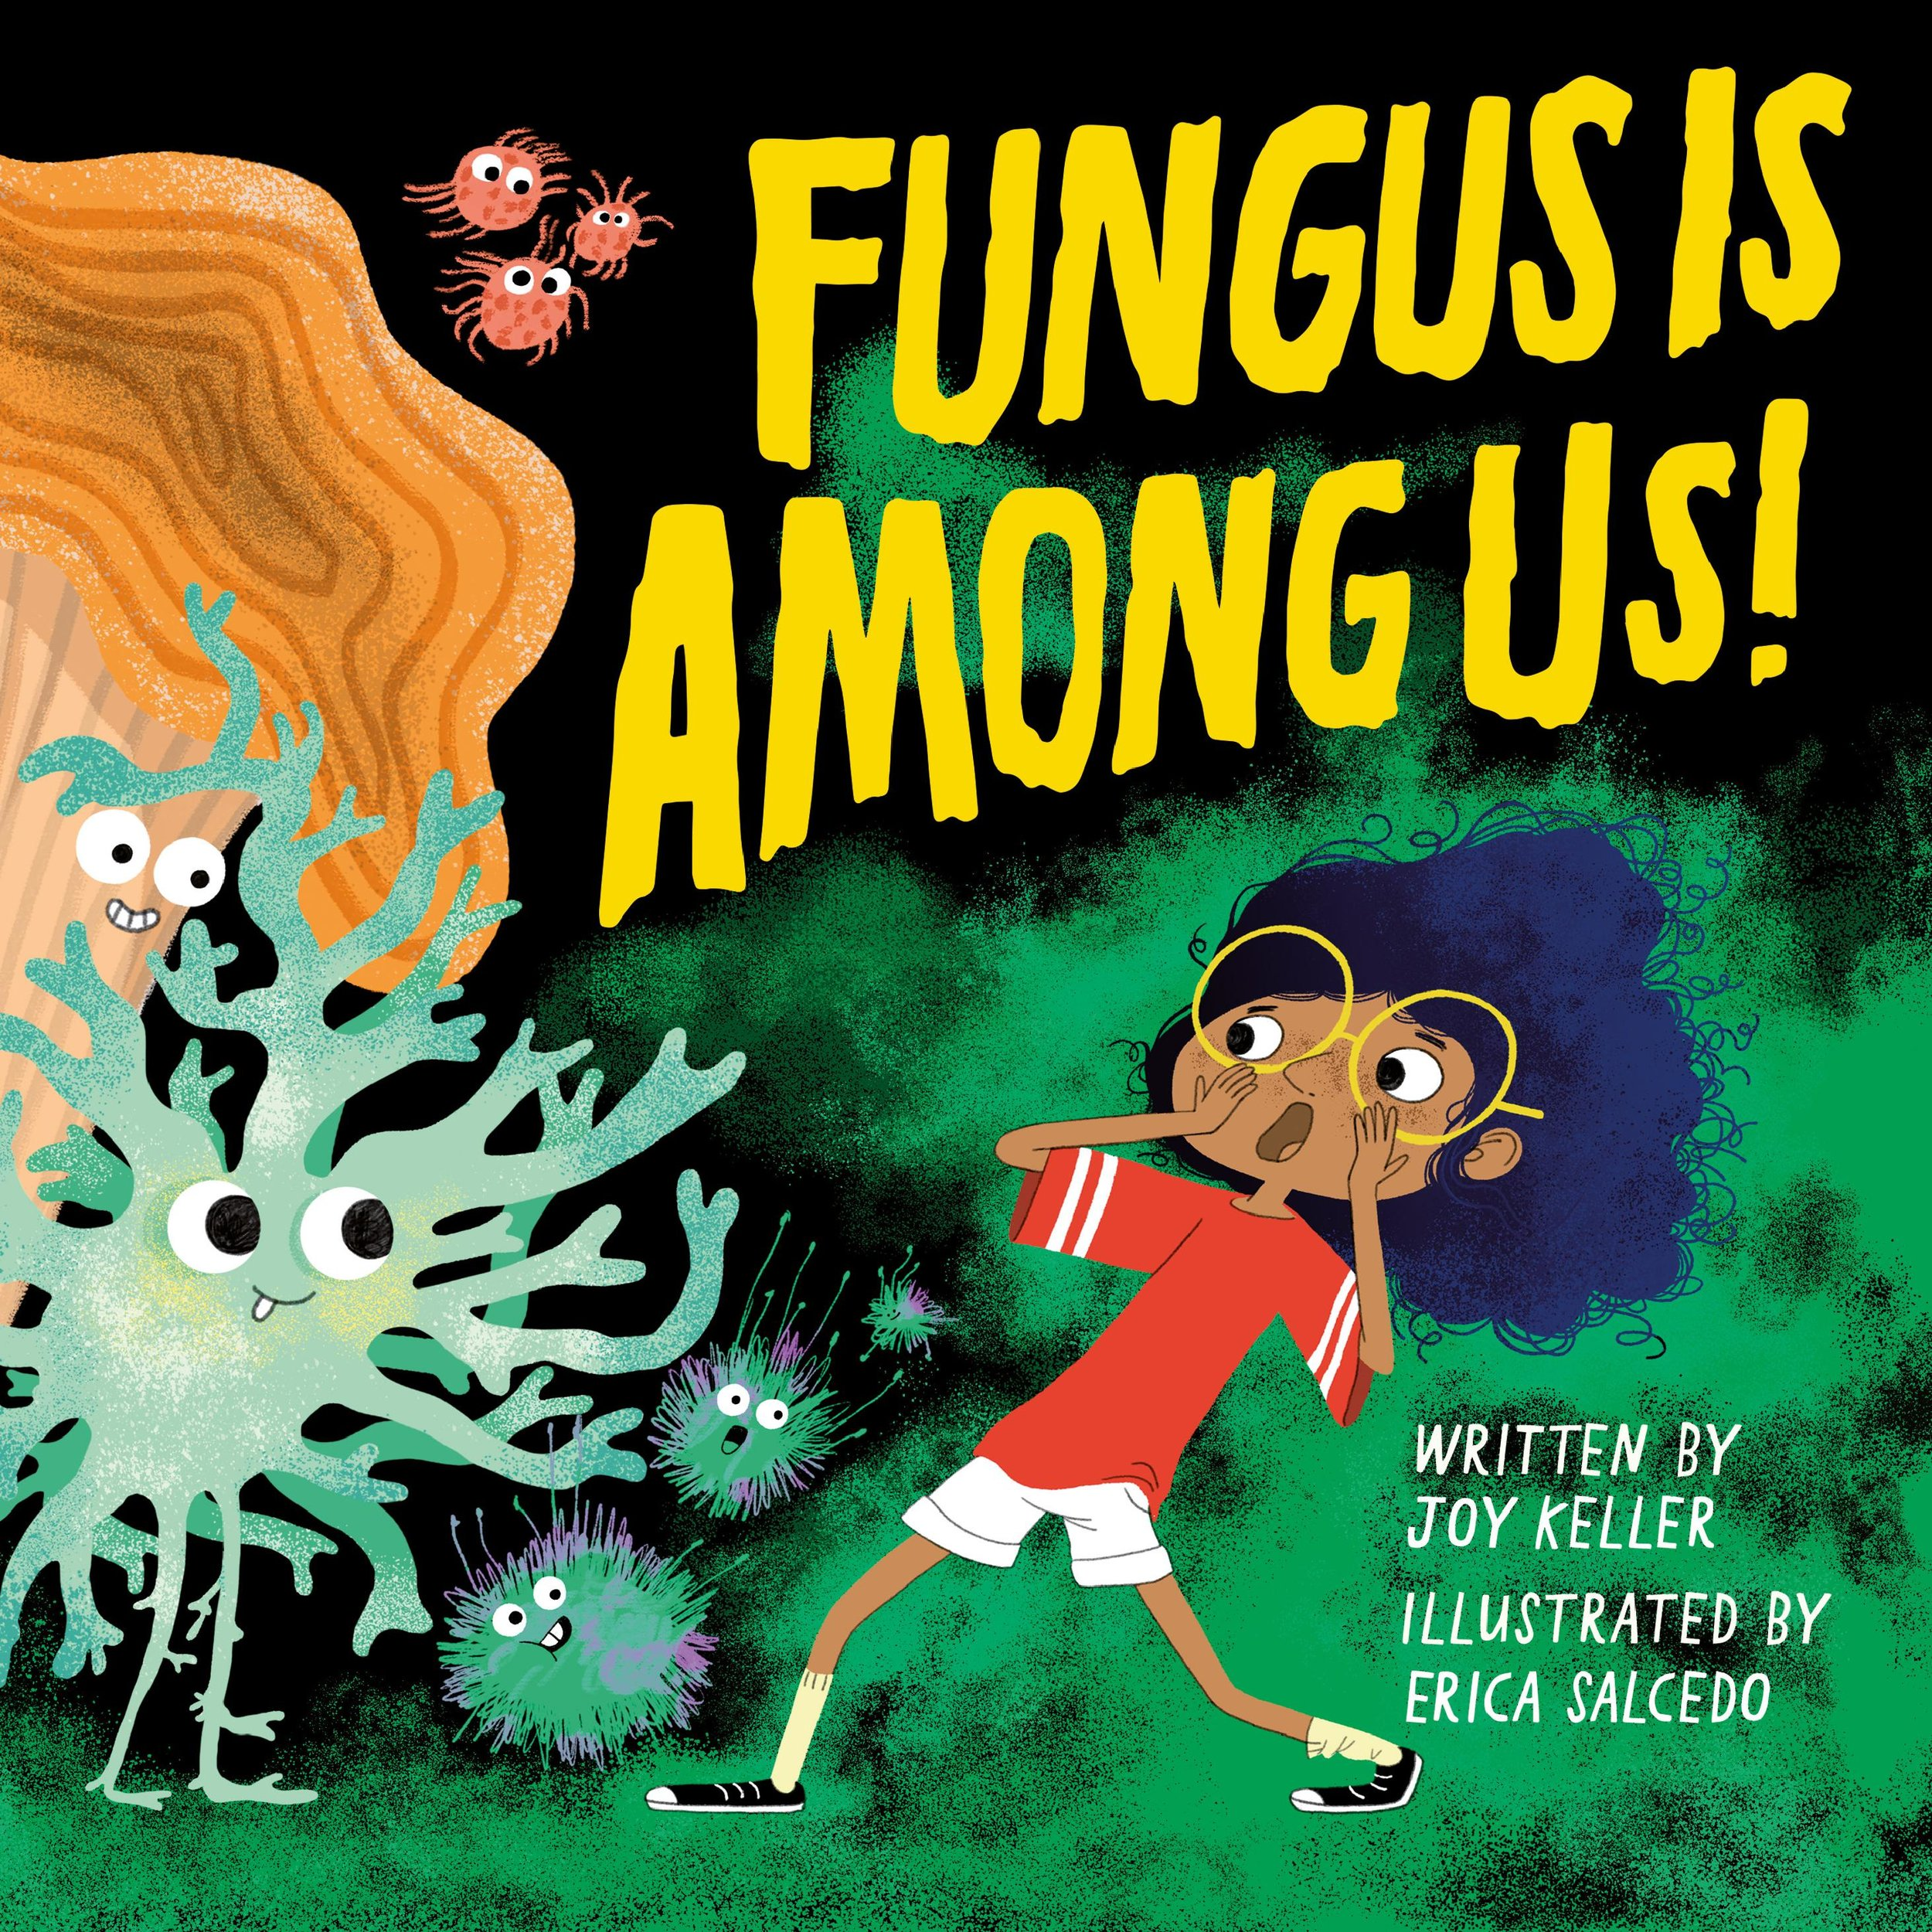 Fungus-Among-Us-New-Cover-page-001.jpg